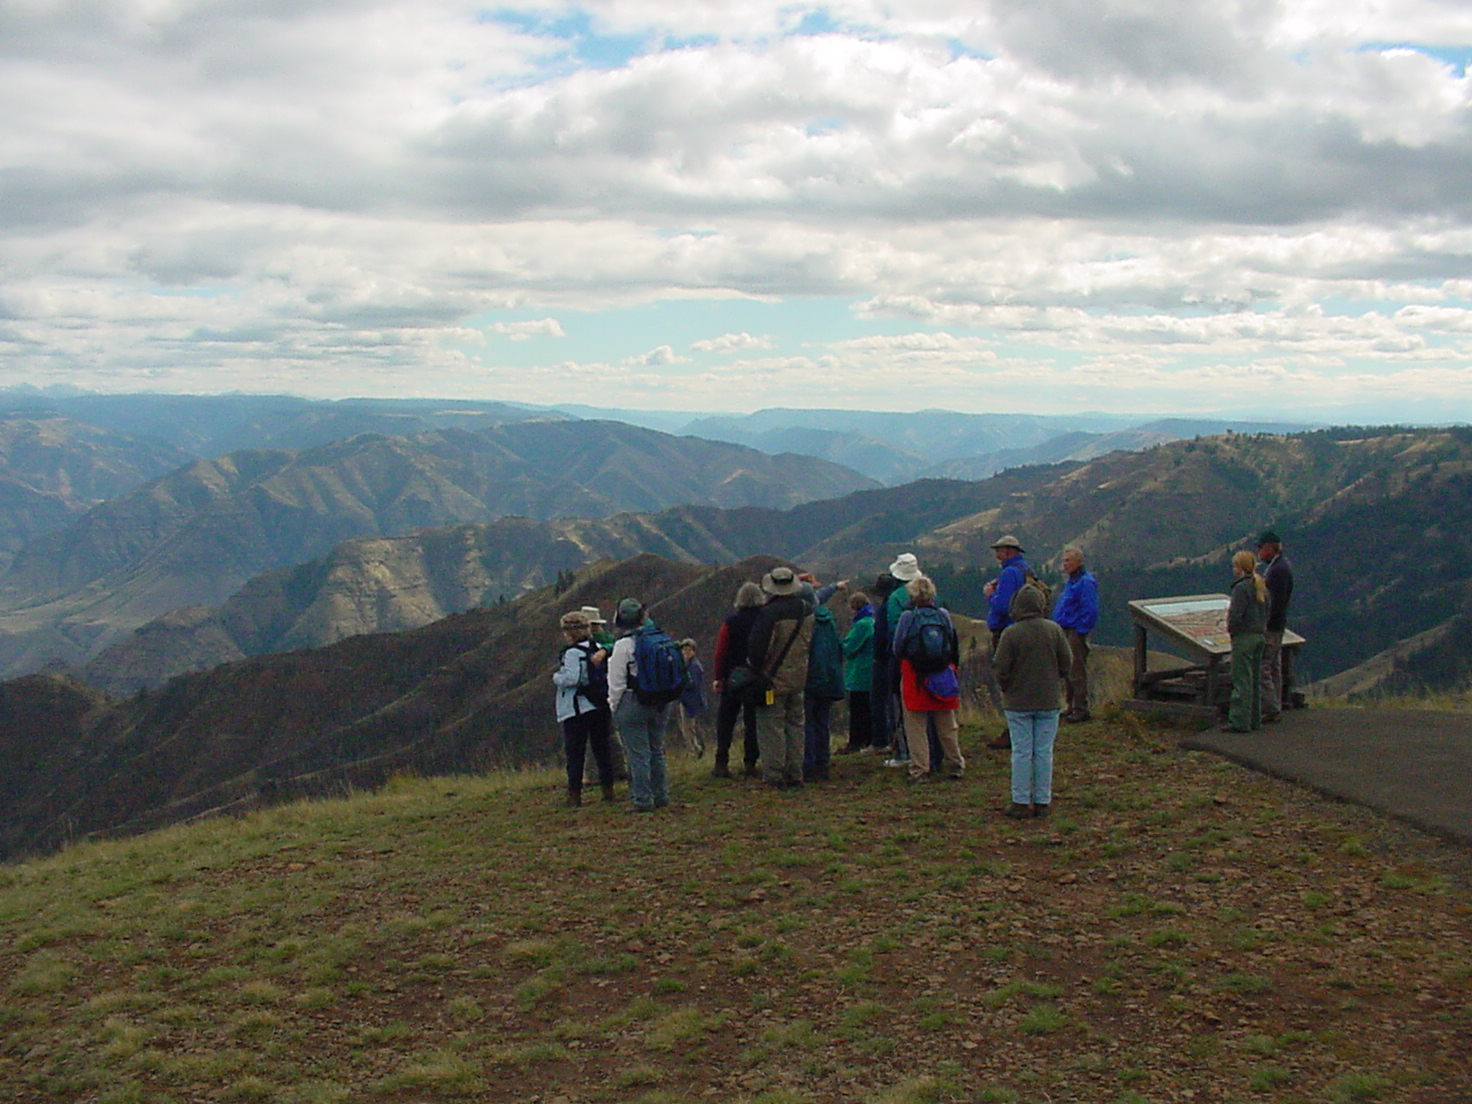 Large group overlooking open canyon and grassy slopes